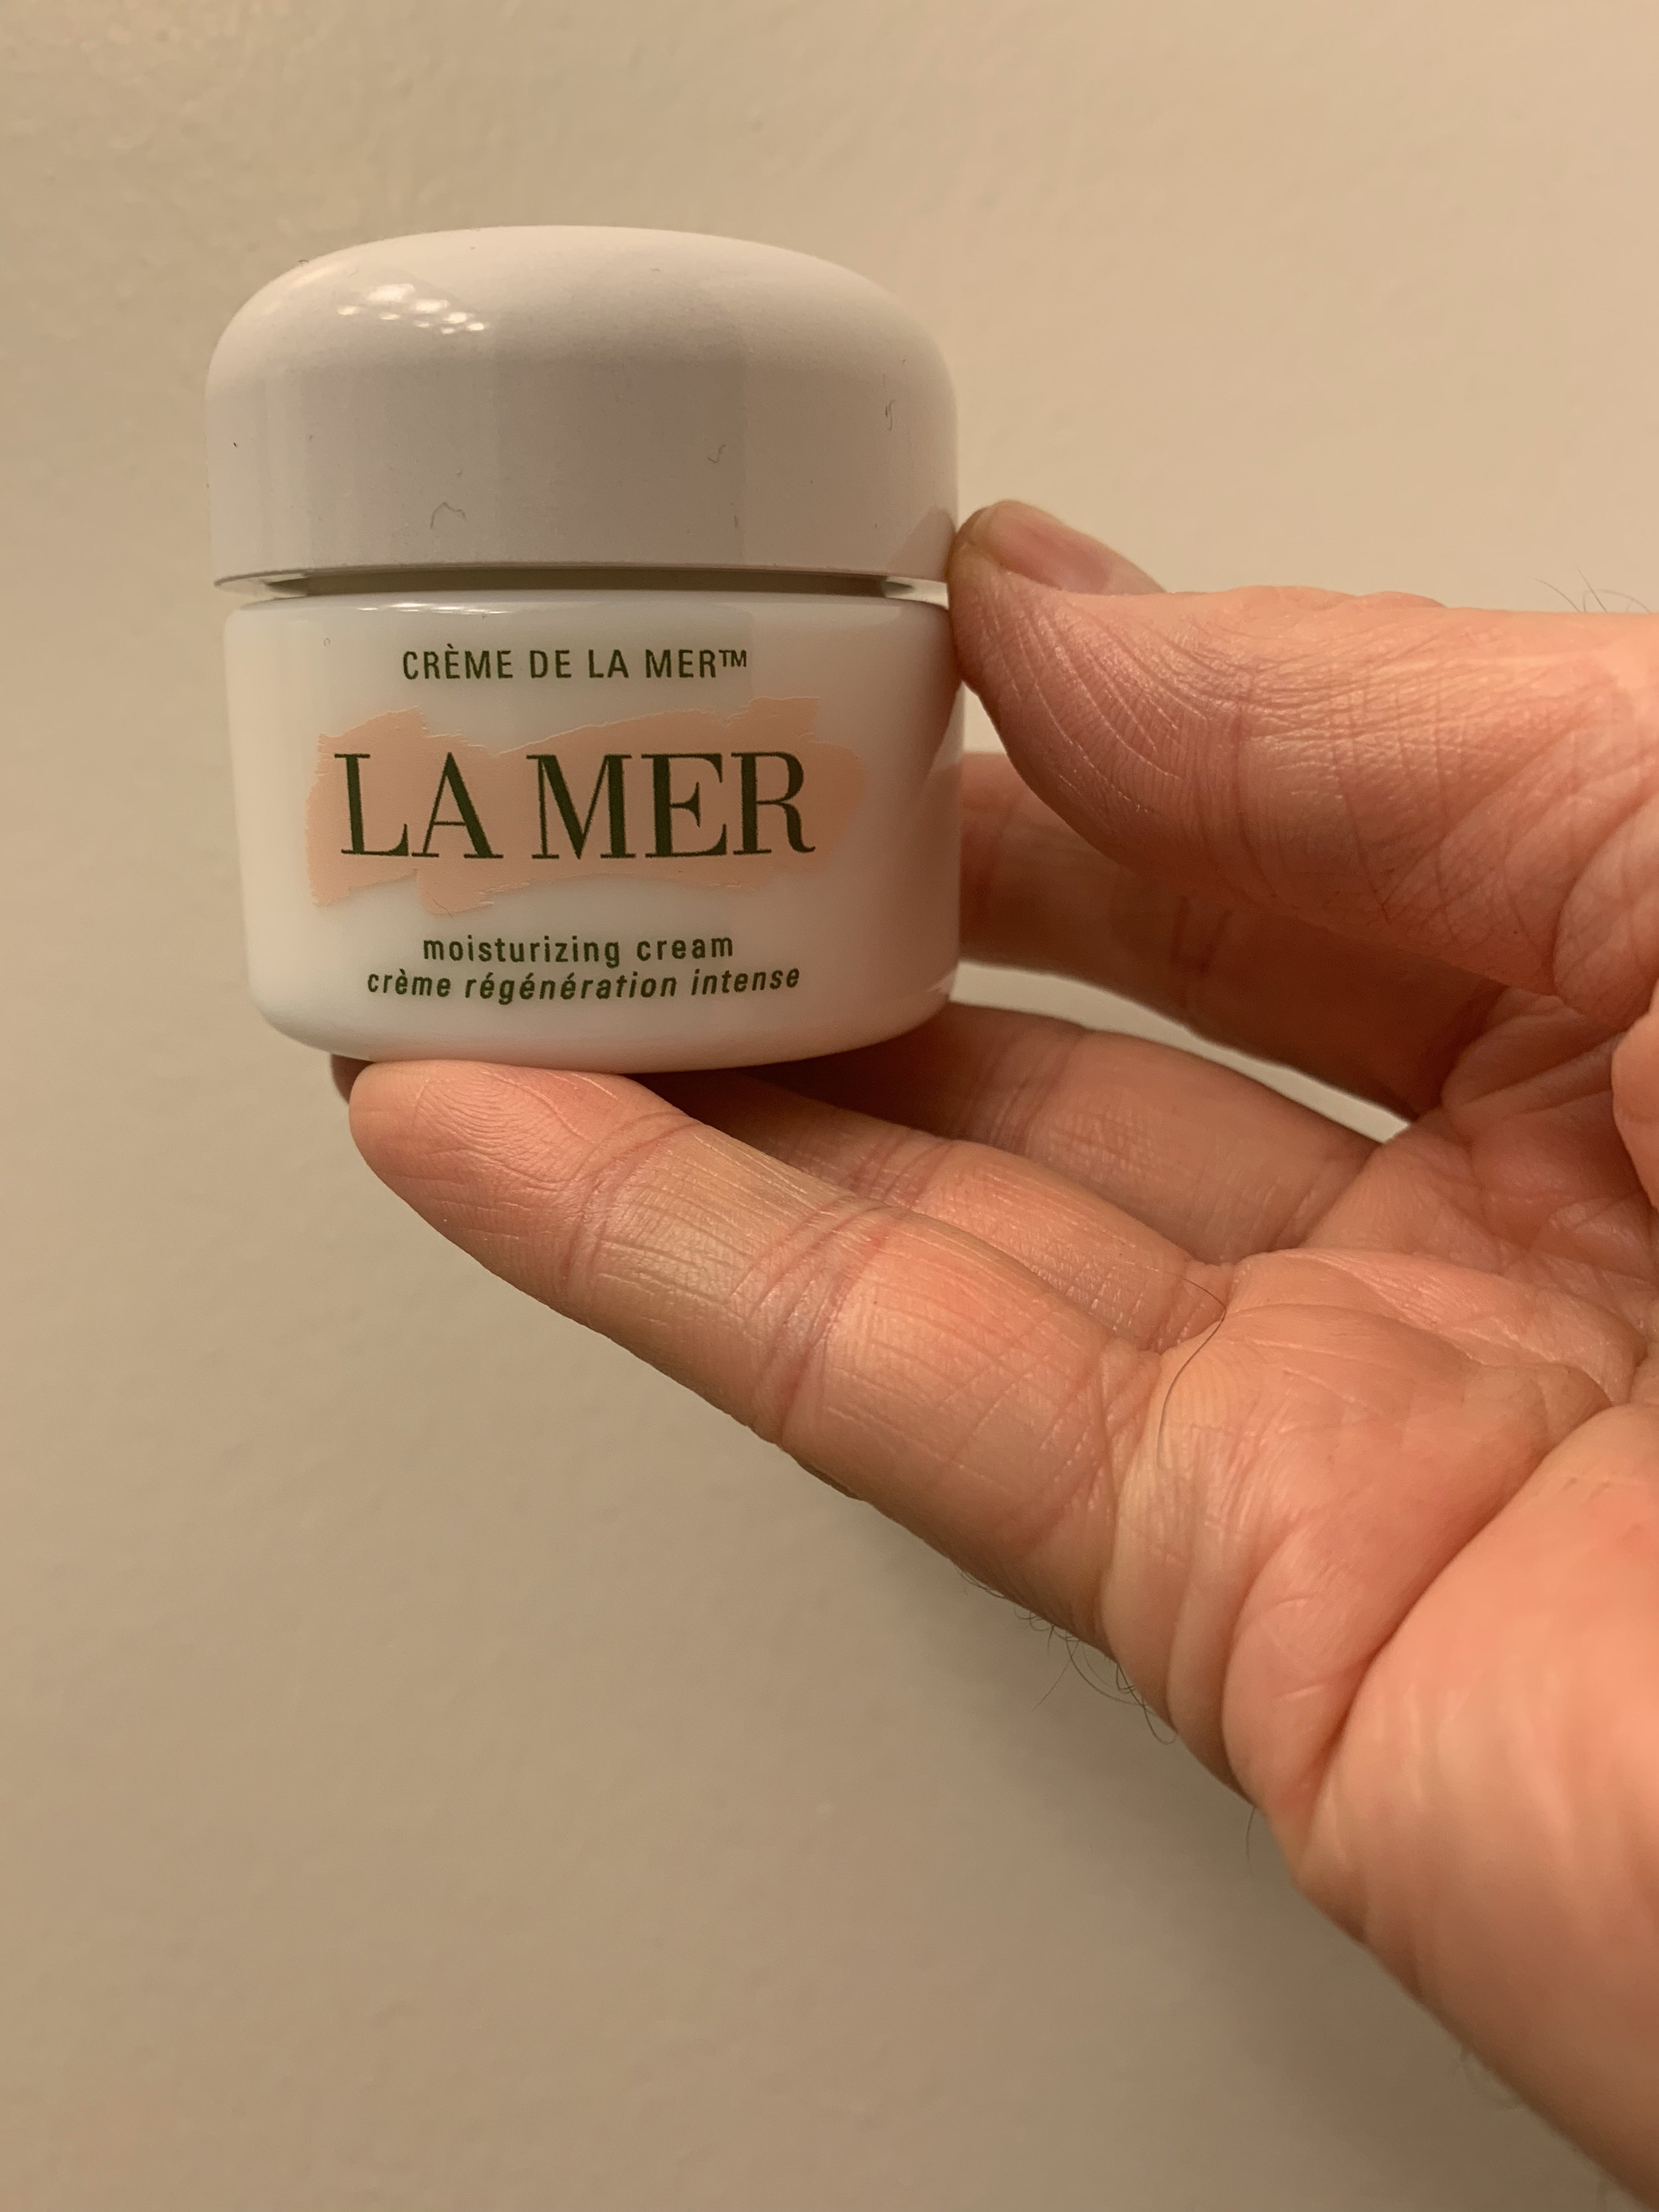 I used La Mer's iconic Creme de la Mer cream on the left side of my face each morning.